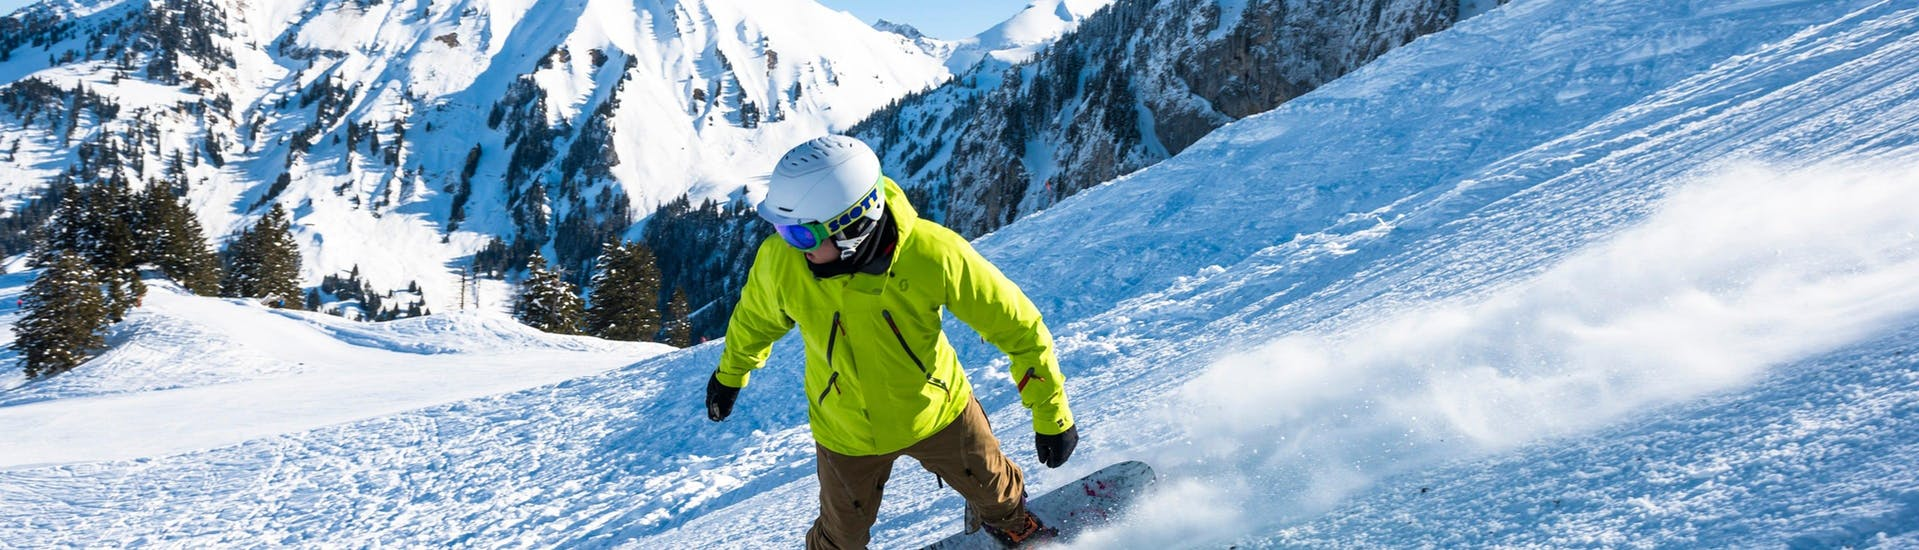 A snowboarder is going down a slope with confidence thanks to his Snowboarding Lessons (6-15 years) - Holidays - All Levels with the swiss ski school Charmey.